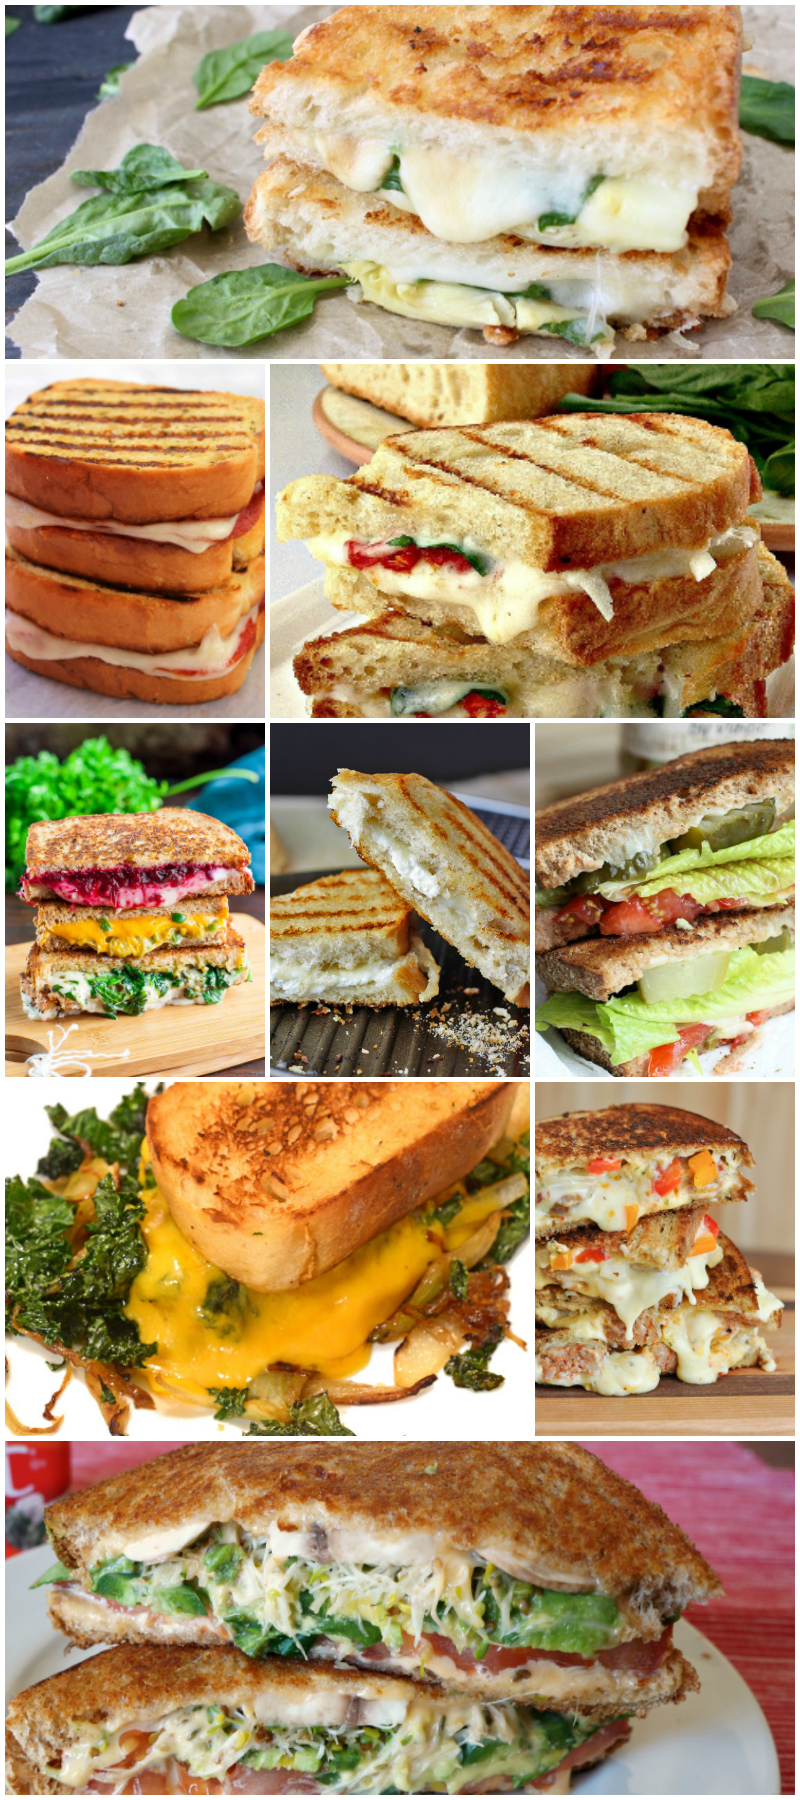 40 Tasty Grilled Cheese Recipes - Food Blogger Recipe Round Up